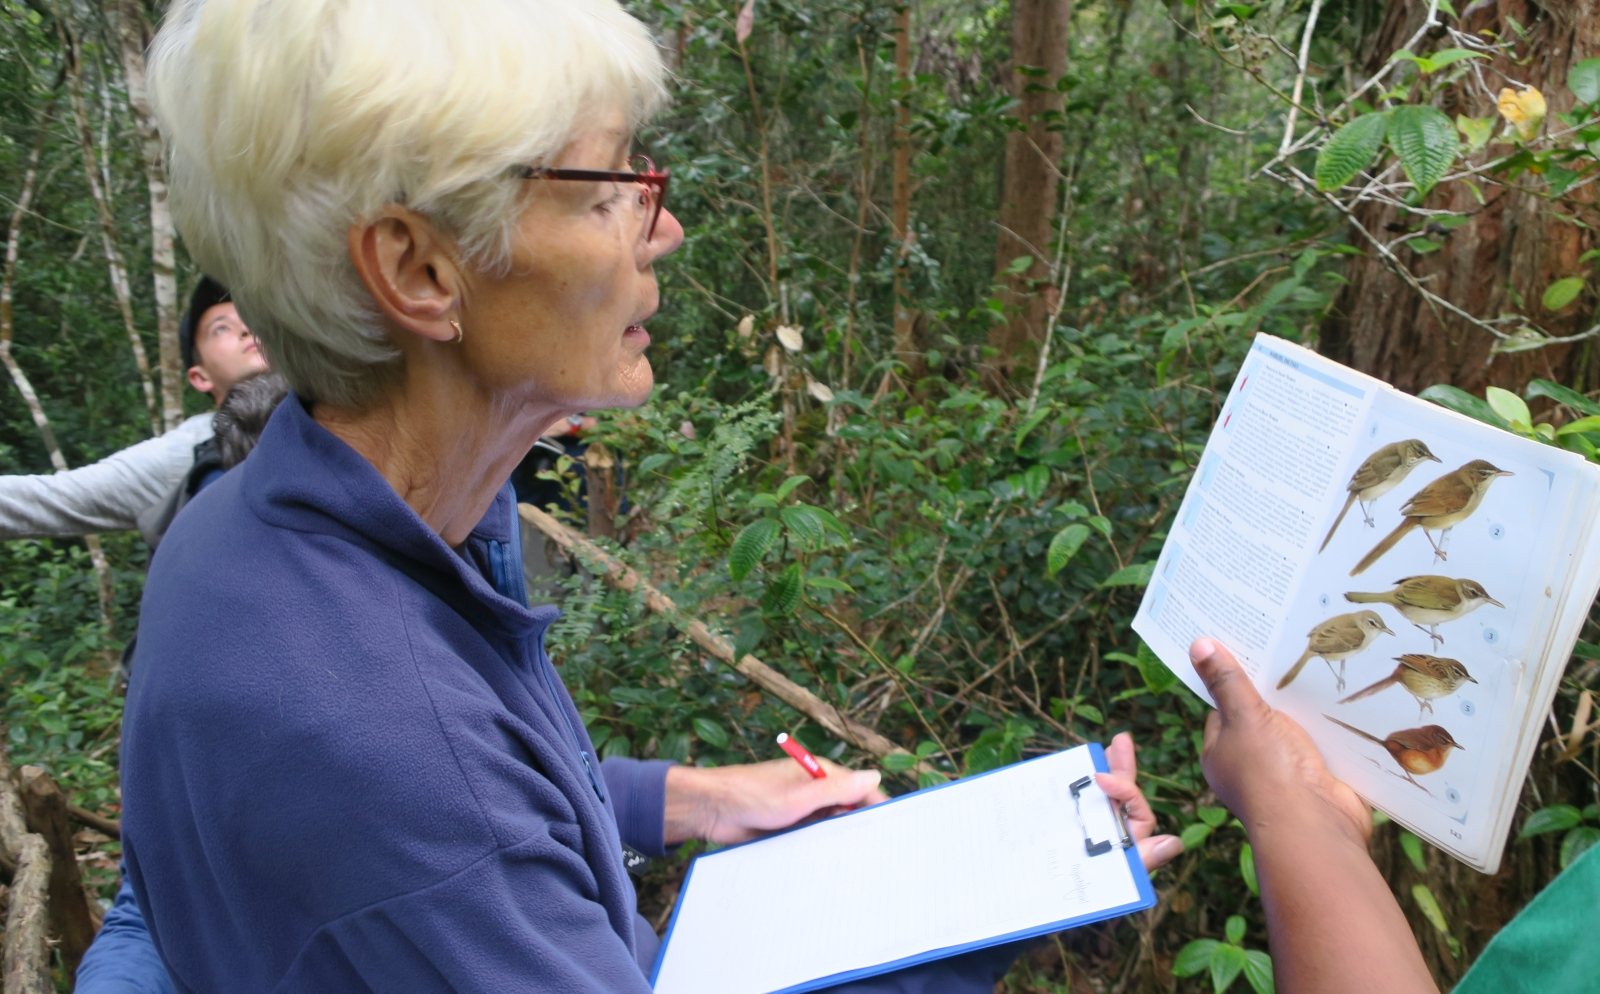 A senior volunteer abroad helps to count bird species during a census at our Conservation Project in Madagascar.